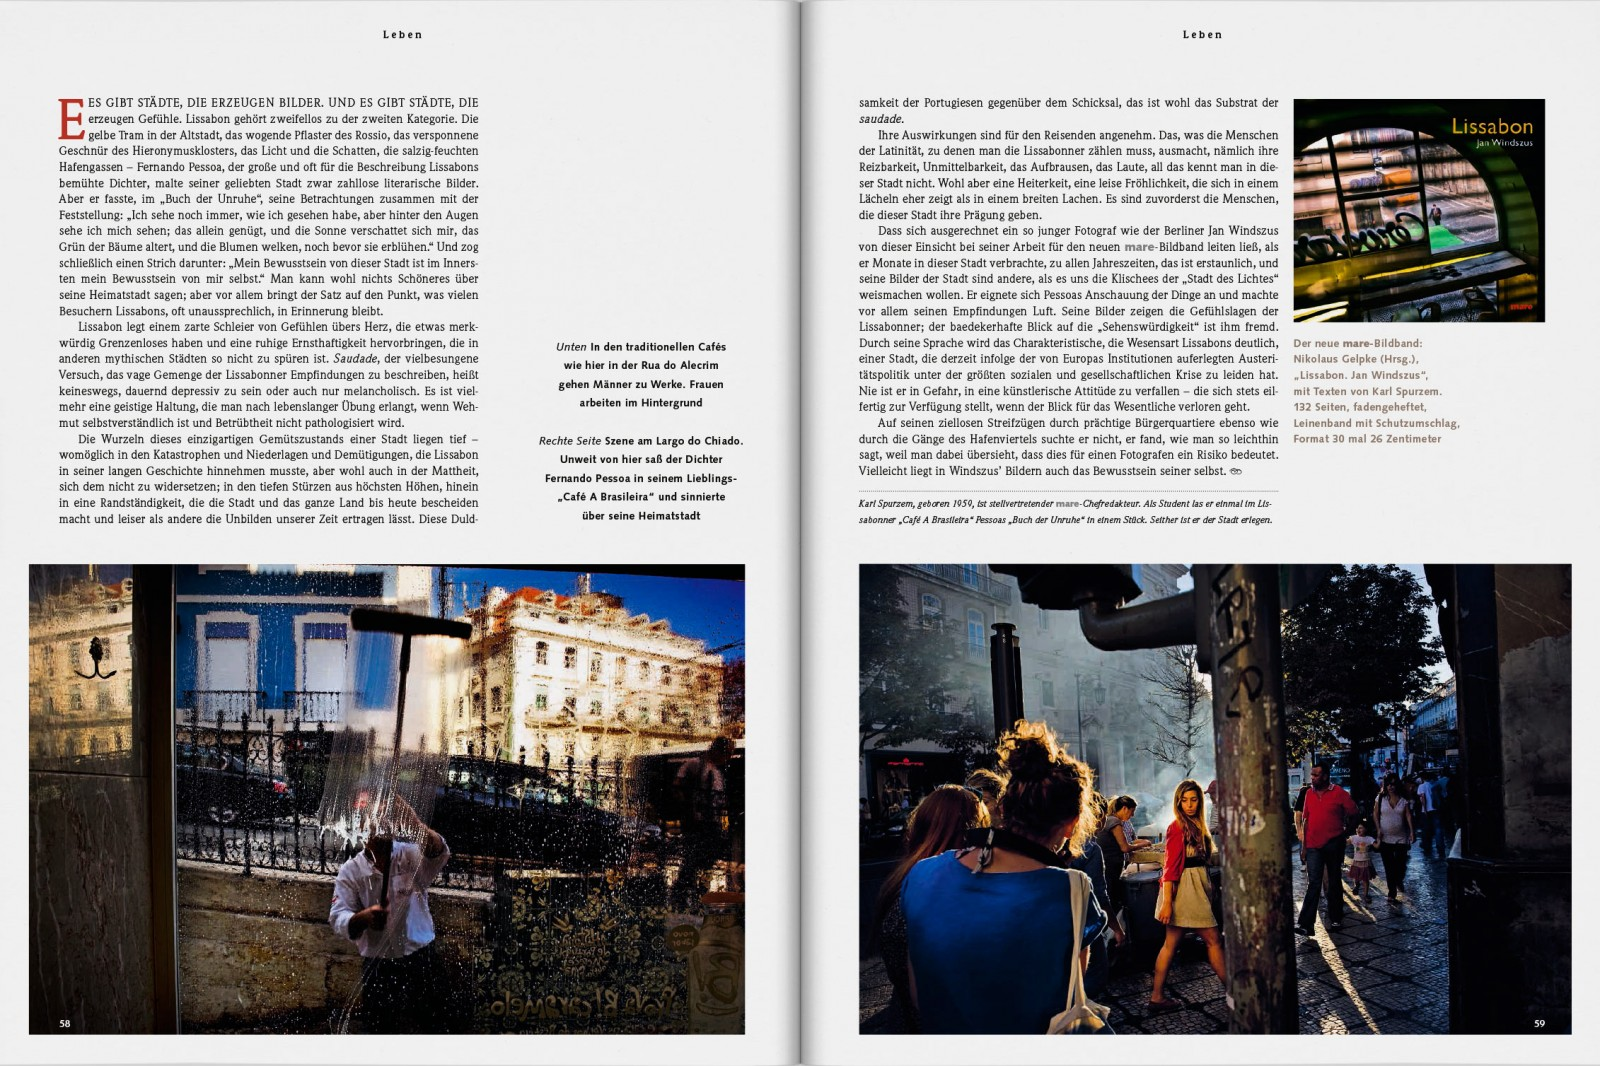 Lisbon - Press 10 by Jan Windszus